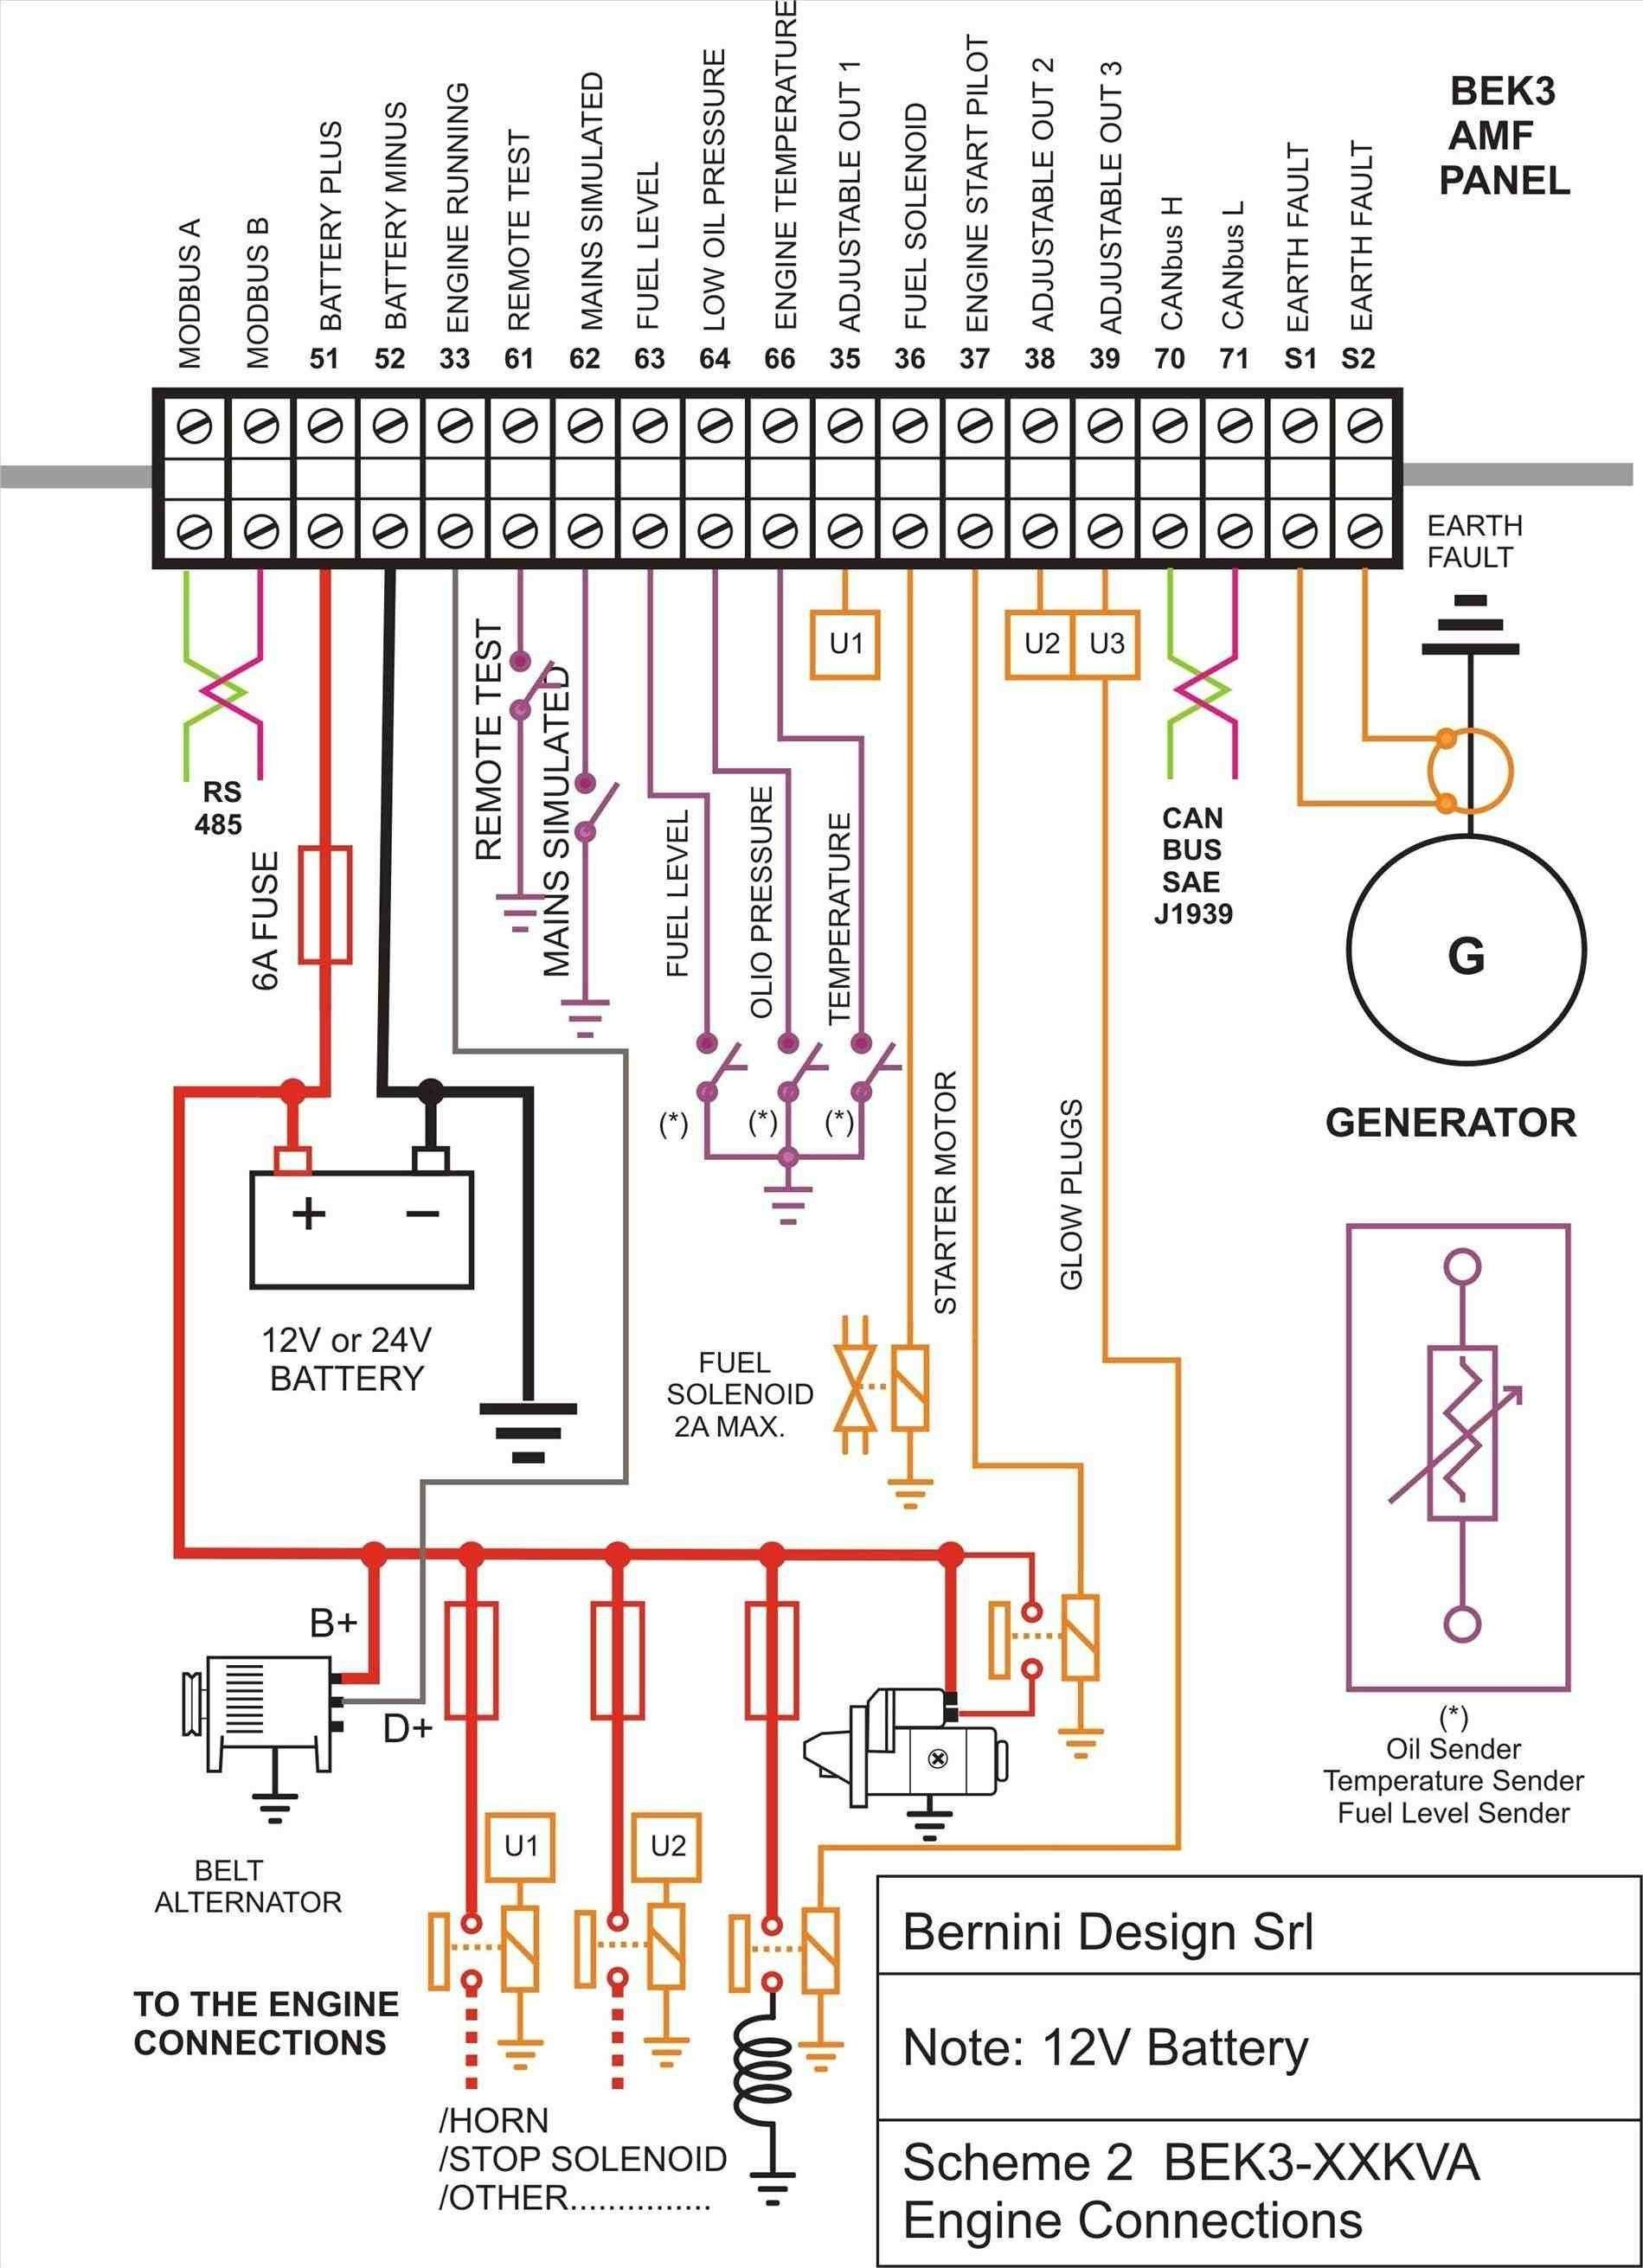 home security system wiring diagram wiring diagram review home alarm system wiring diagram [ 1899 x 2622 Pixel ]